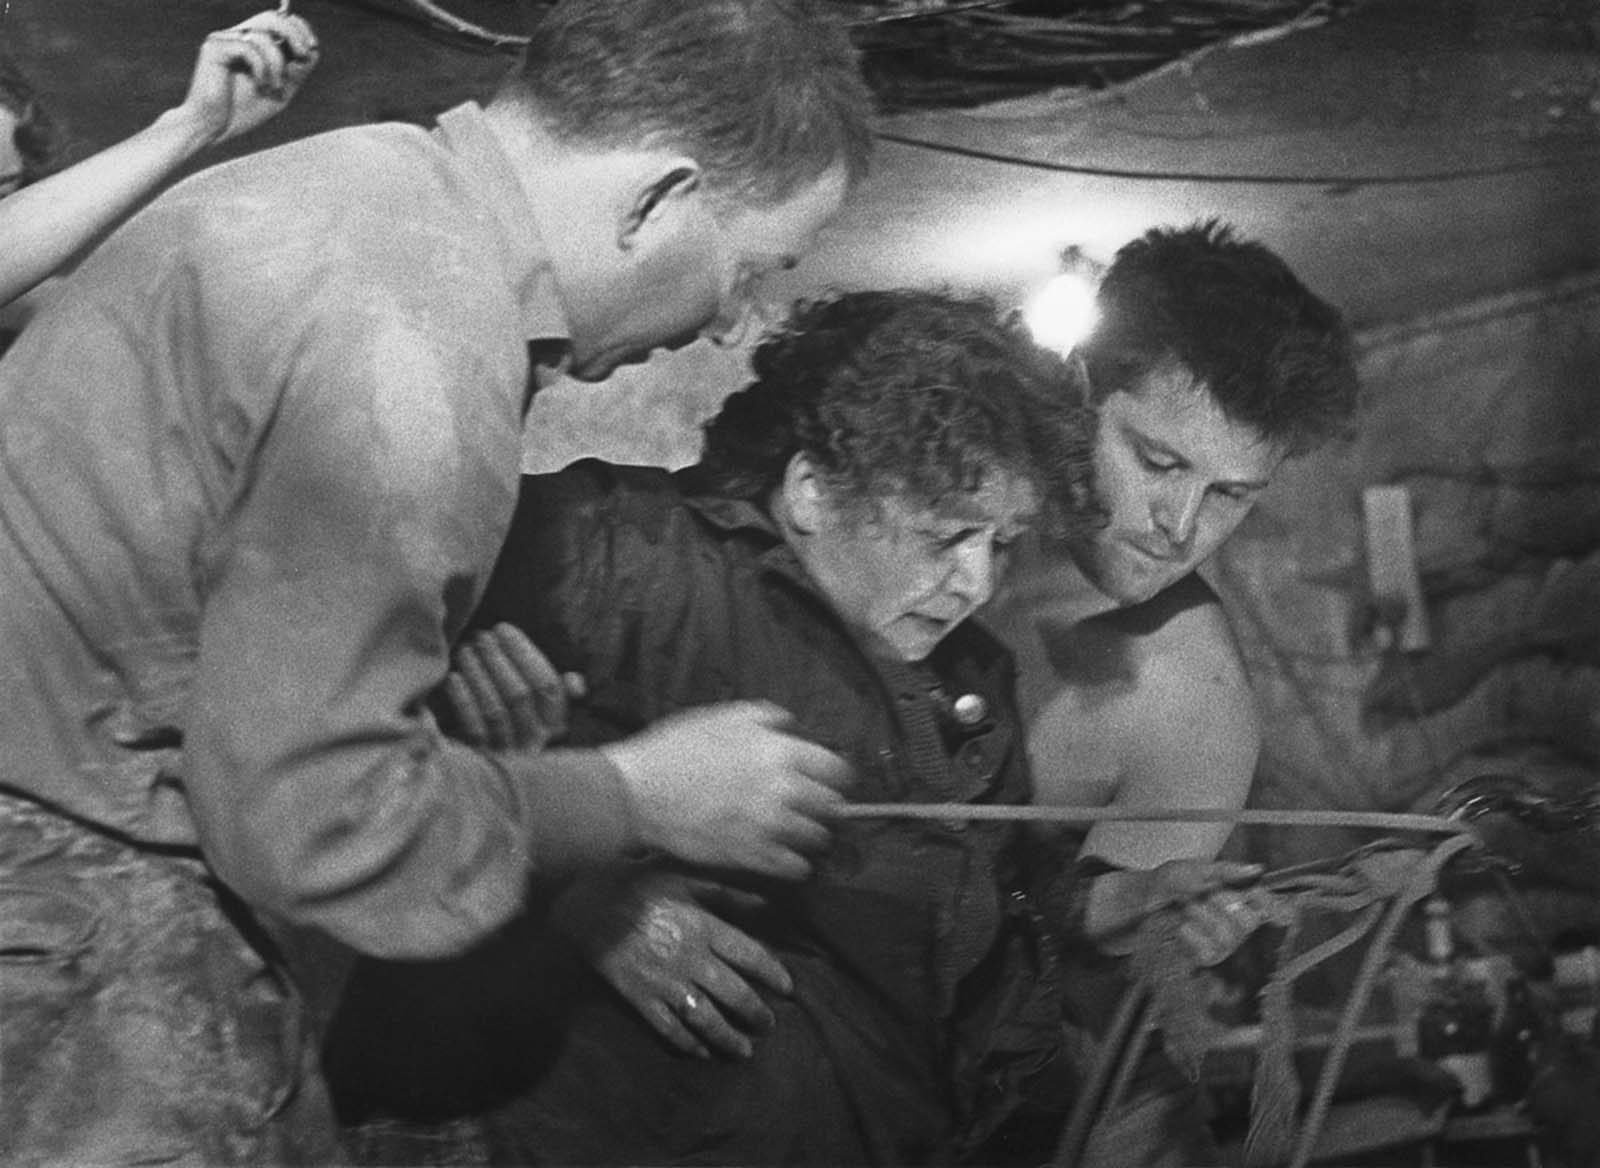 A 75-year-old woman is helped into Tunnel 57, through which 57 East Berlin citizens escaped to the western sector of the city on October 3 and 4, 1964. The tunnel was dug from West to East by a group of 20 students led by Joachim Neumann, from a disused bakery building on Bernauer Strasse, under the Berlin Wall, to a building 145 meters away on Strelitzer Strasse in East Berlin.